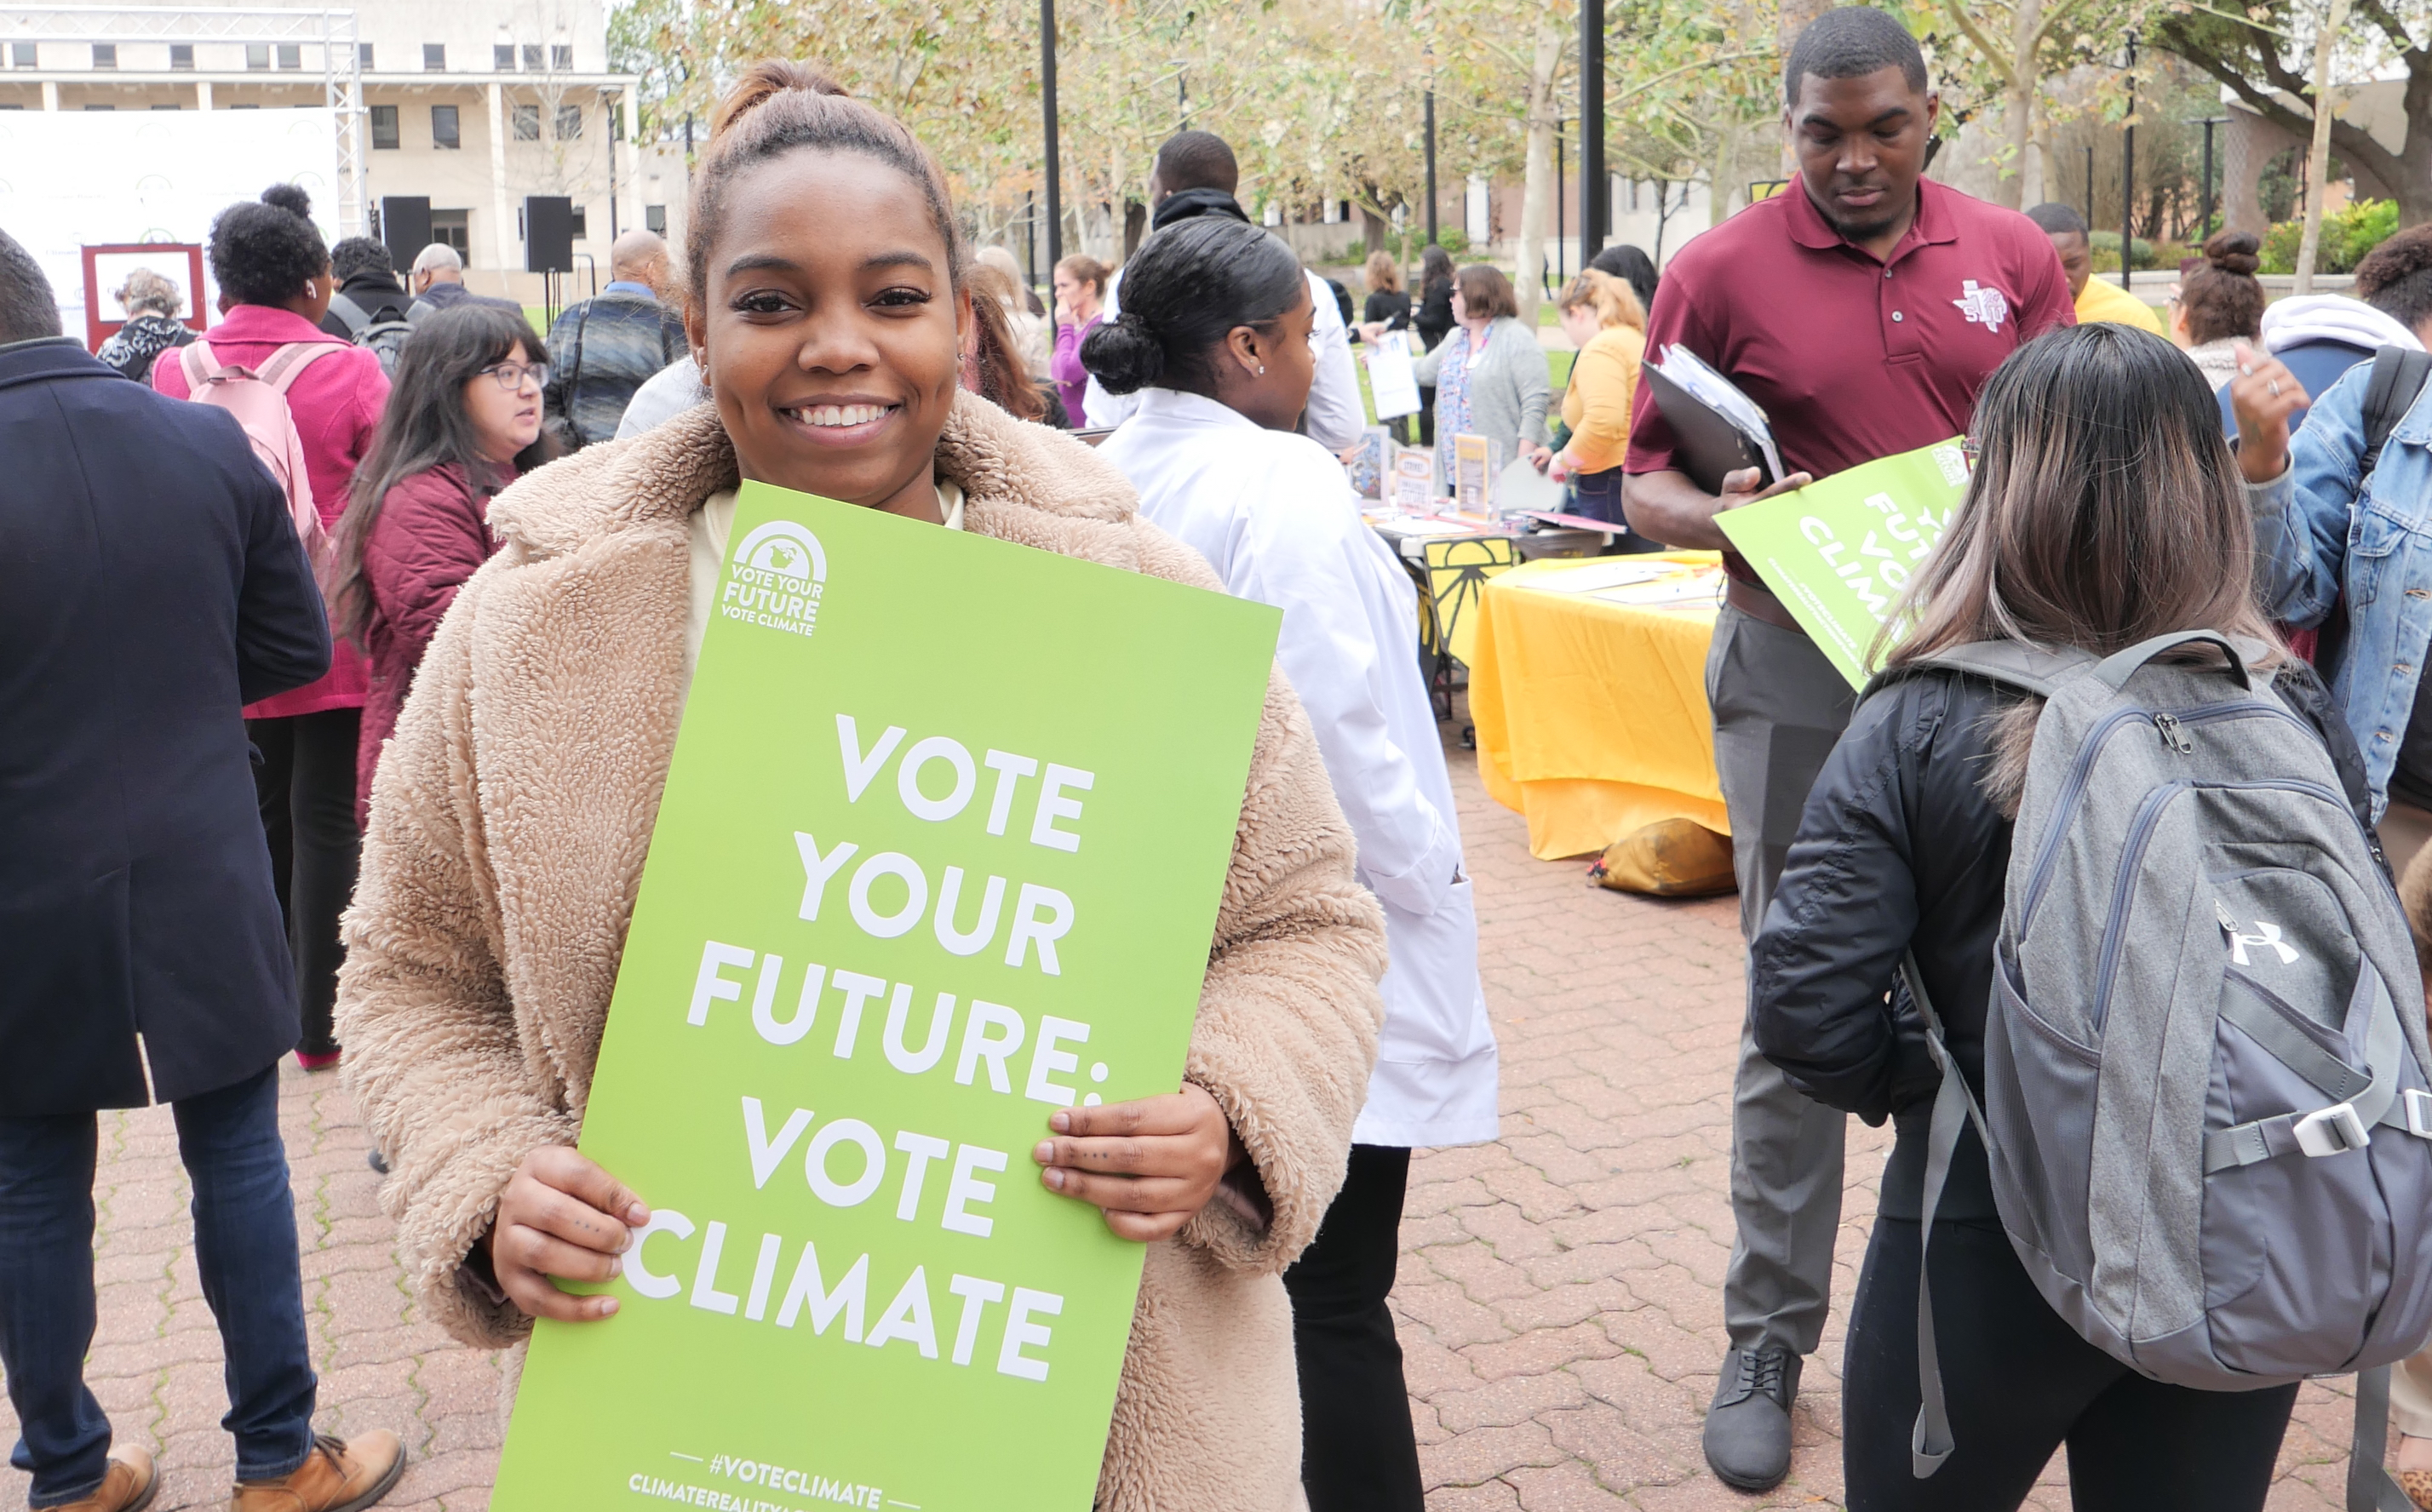 TSU student with vote your future sign